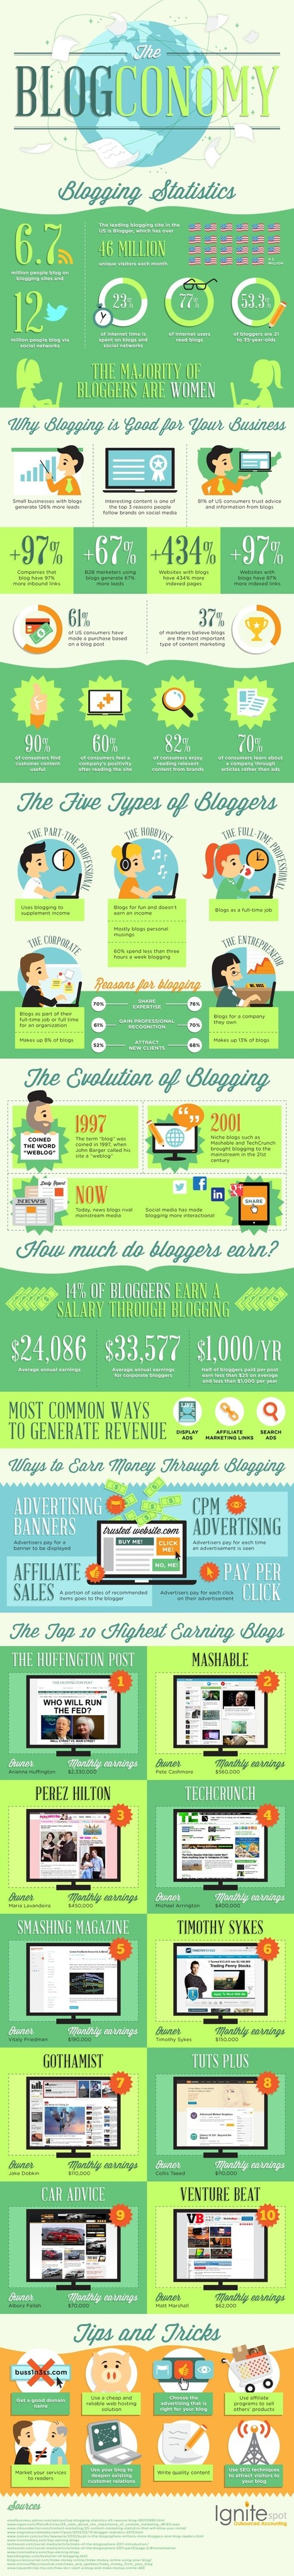 The #1 Small Business Marketing Idea - Infographic | Ignite Spot | branded entertainment | Scoop.it